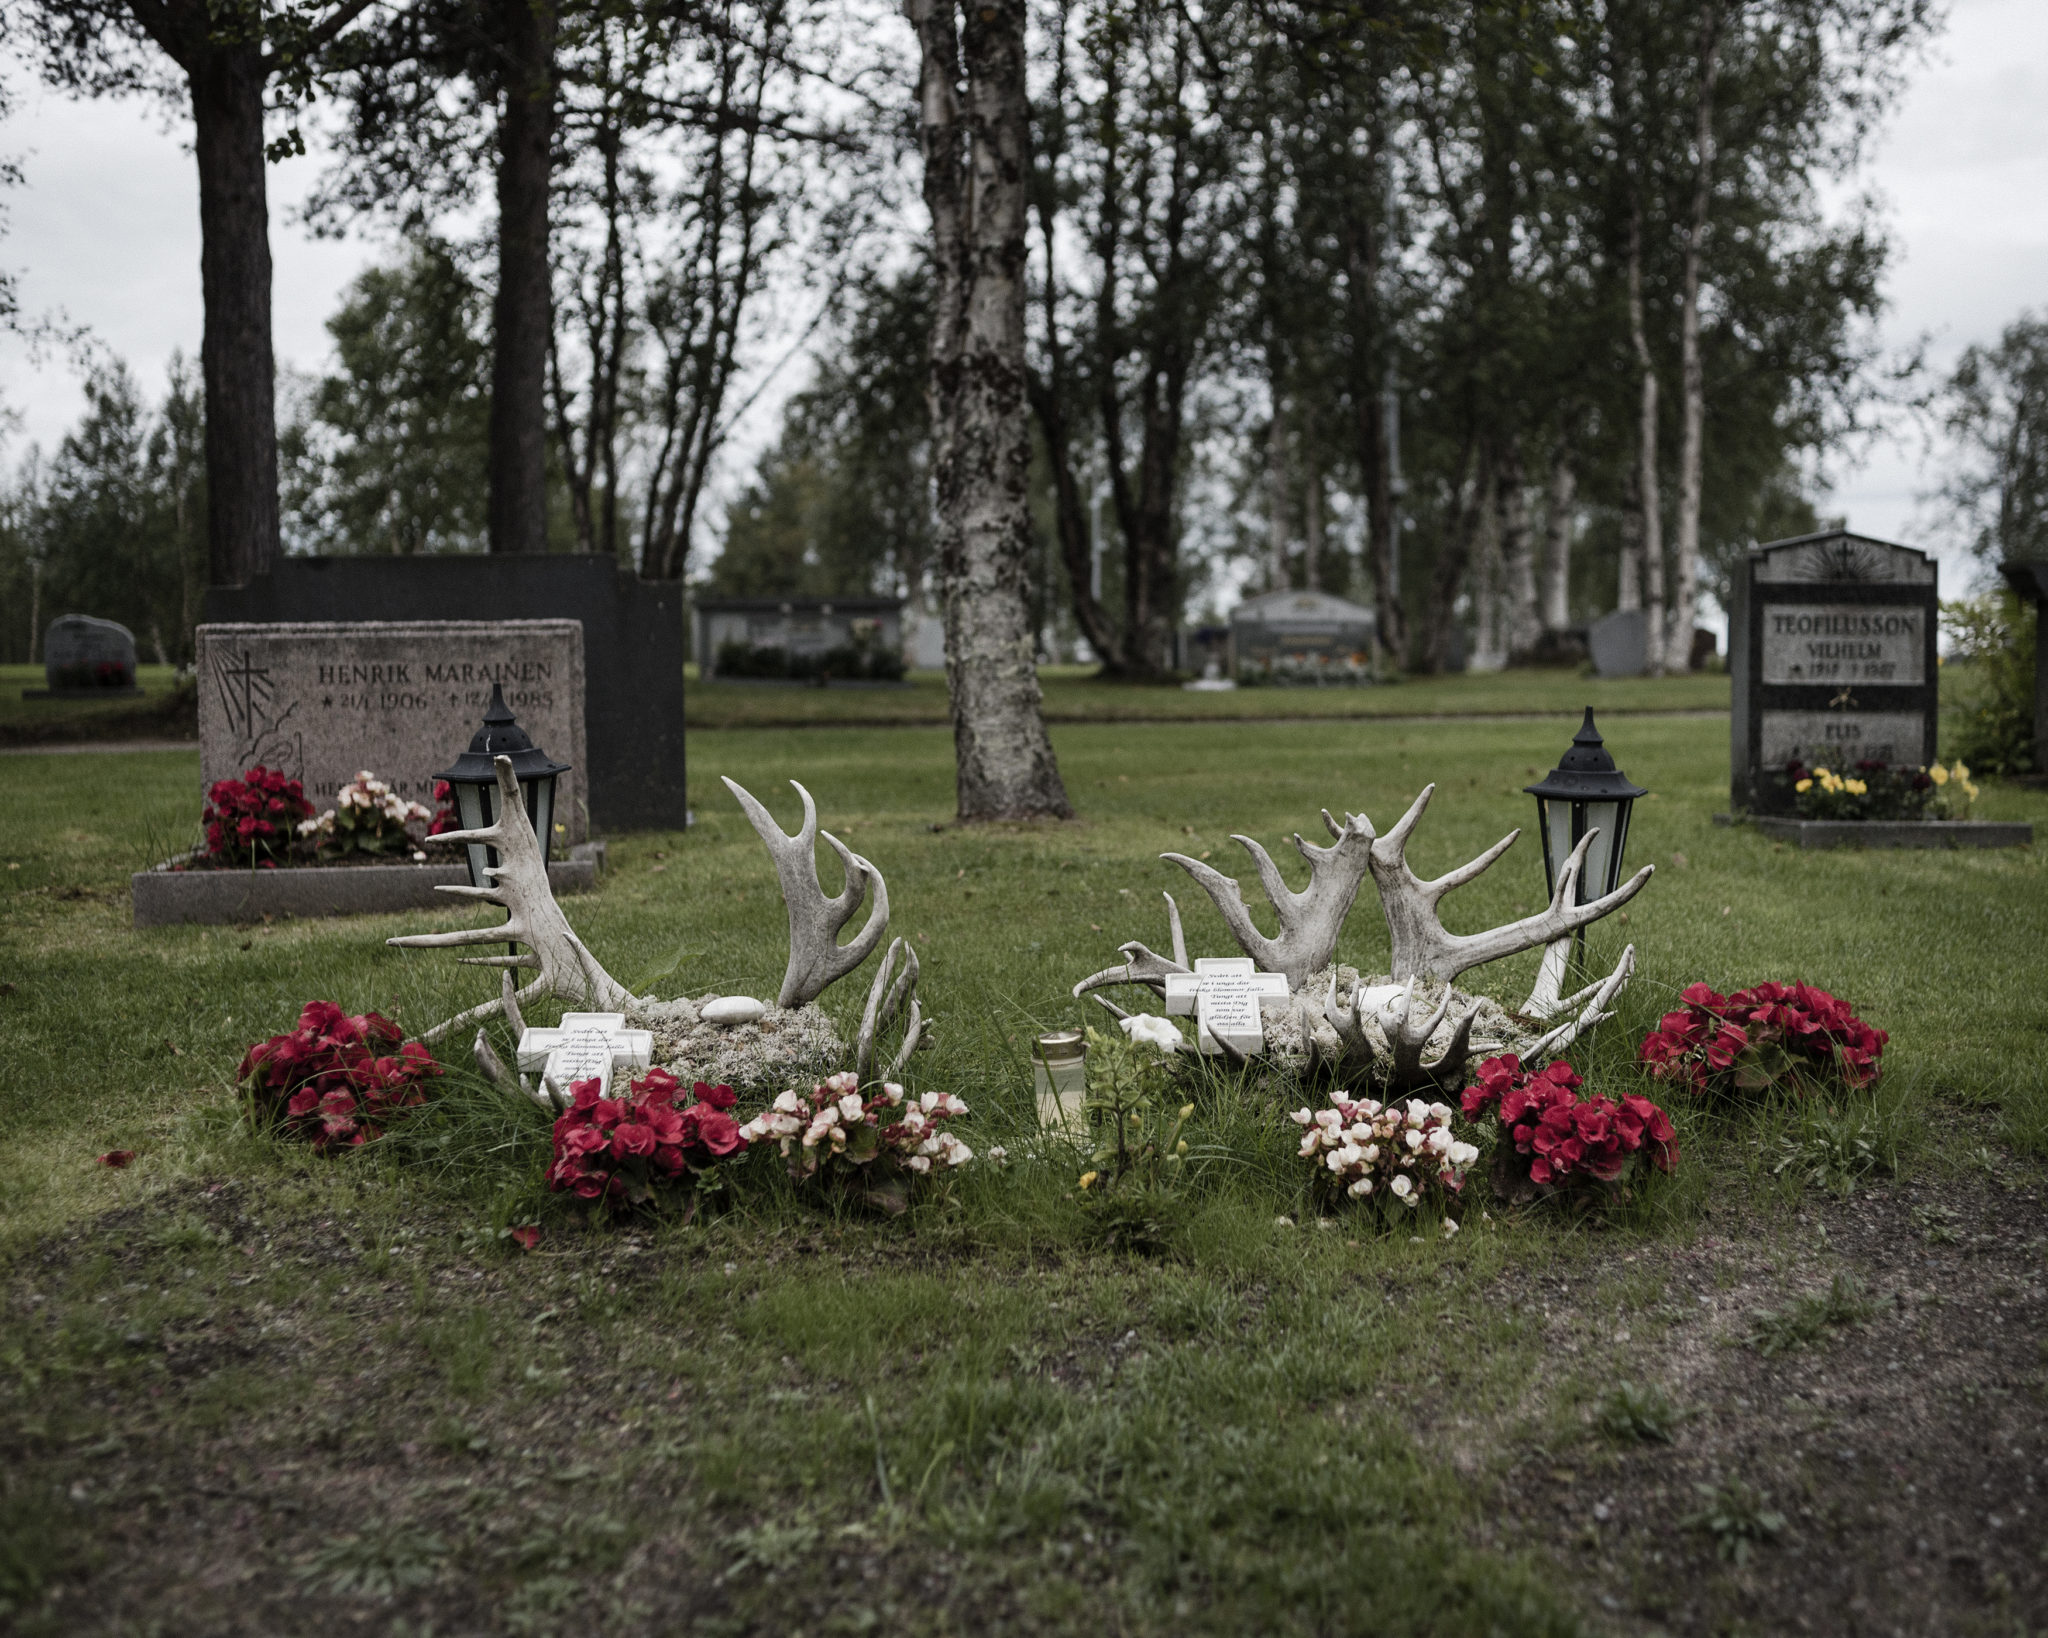 "The graves of Gustu and Heaika Marainen are decorated with flowers and antlers. On the grave, there are words in Swedish: ""It's hard to see in young days fresh flowers fall - it's hard to lose you, you were the joy for us all."" Photo by Camilla Andersen"